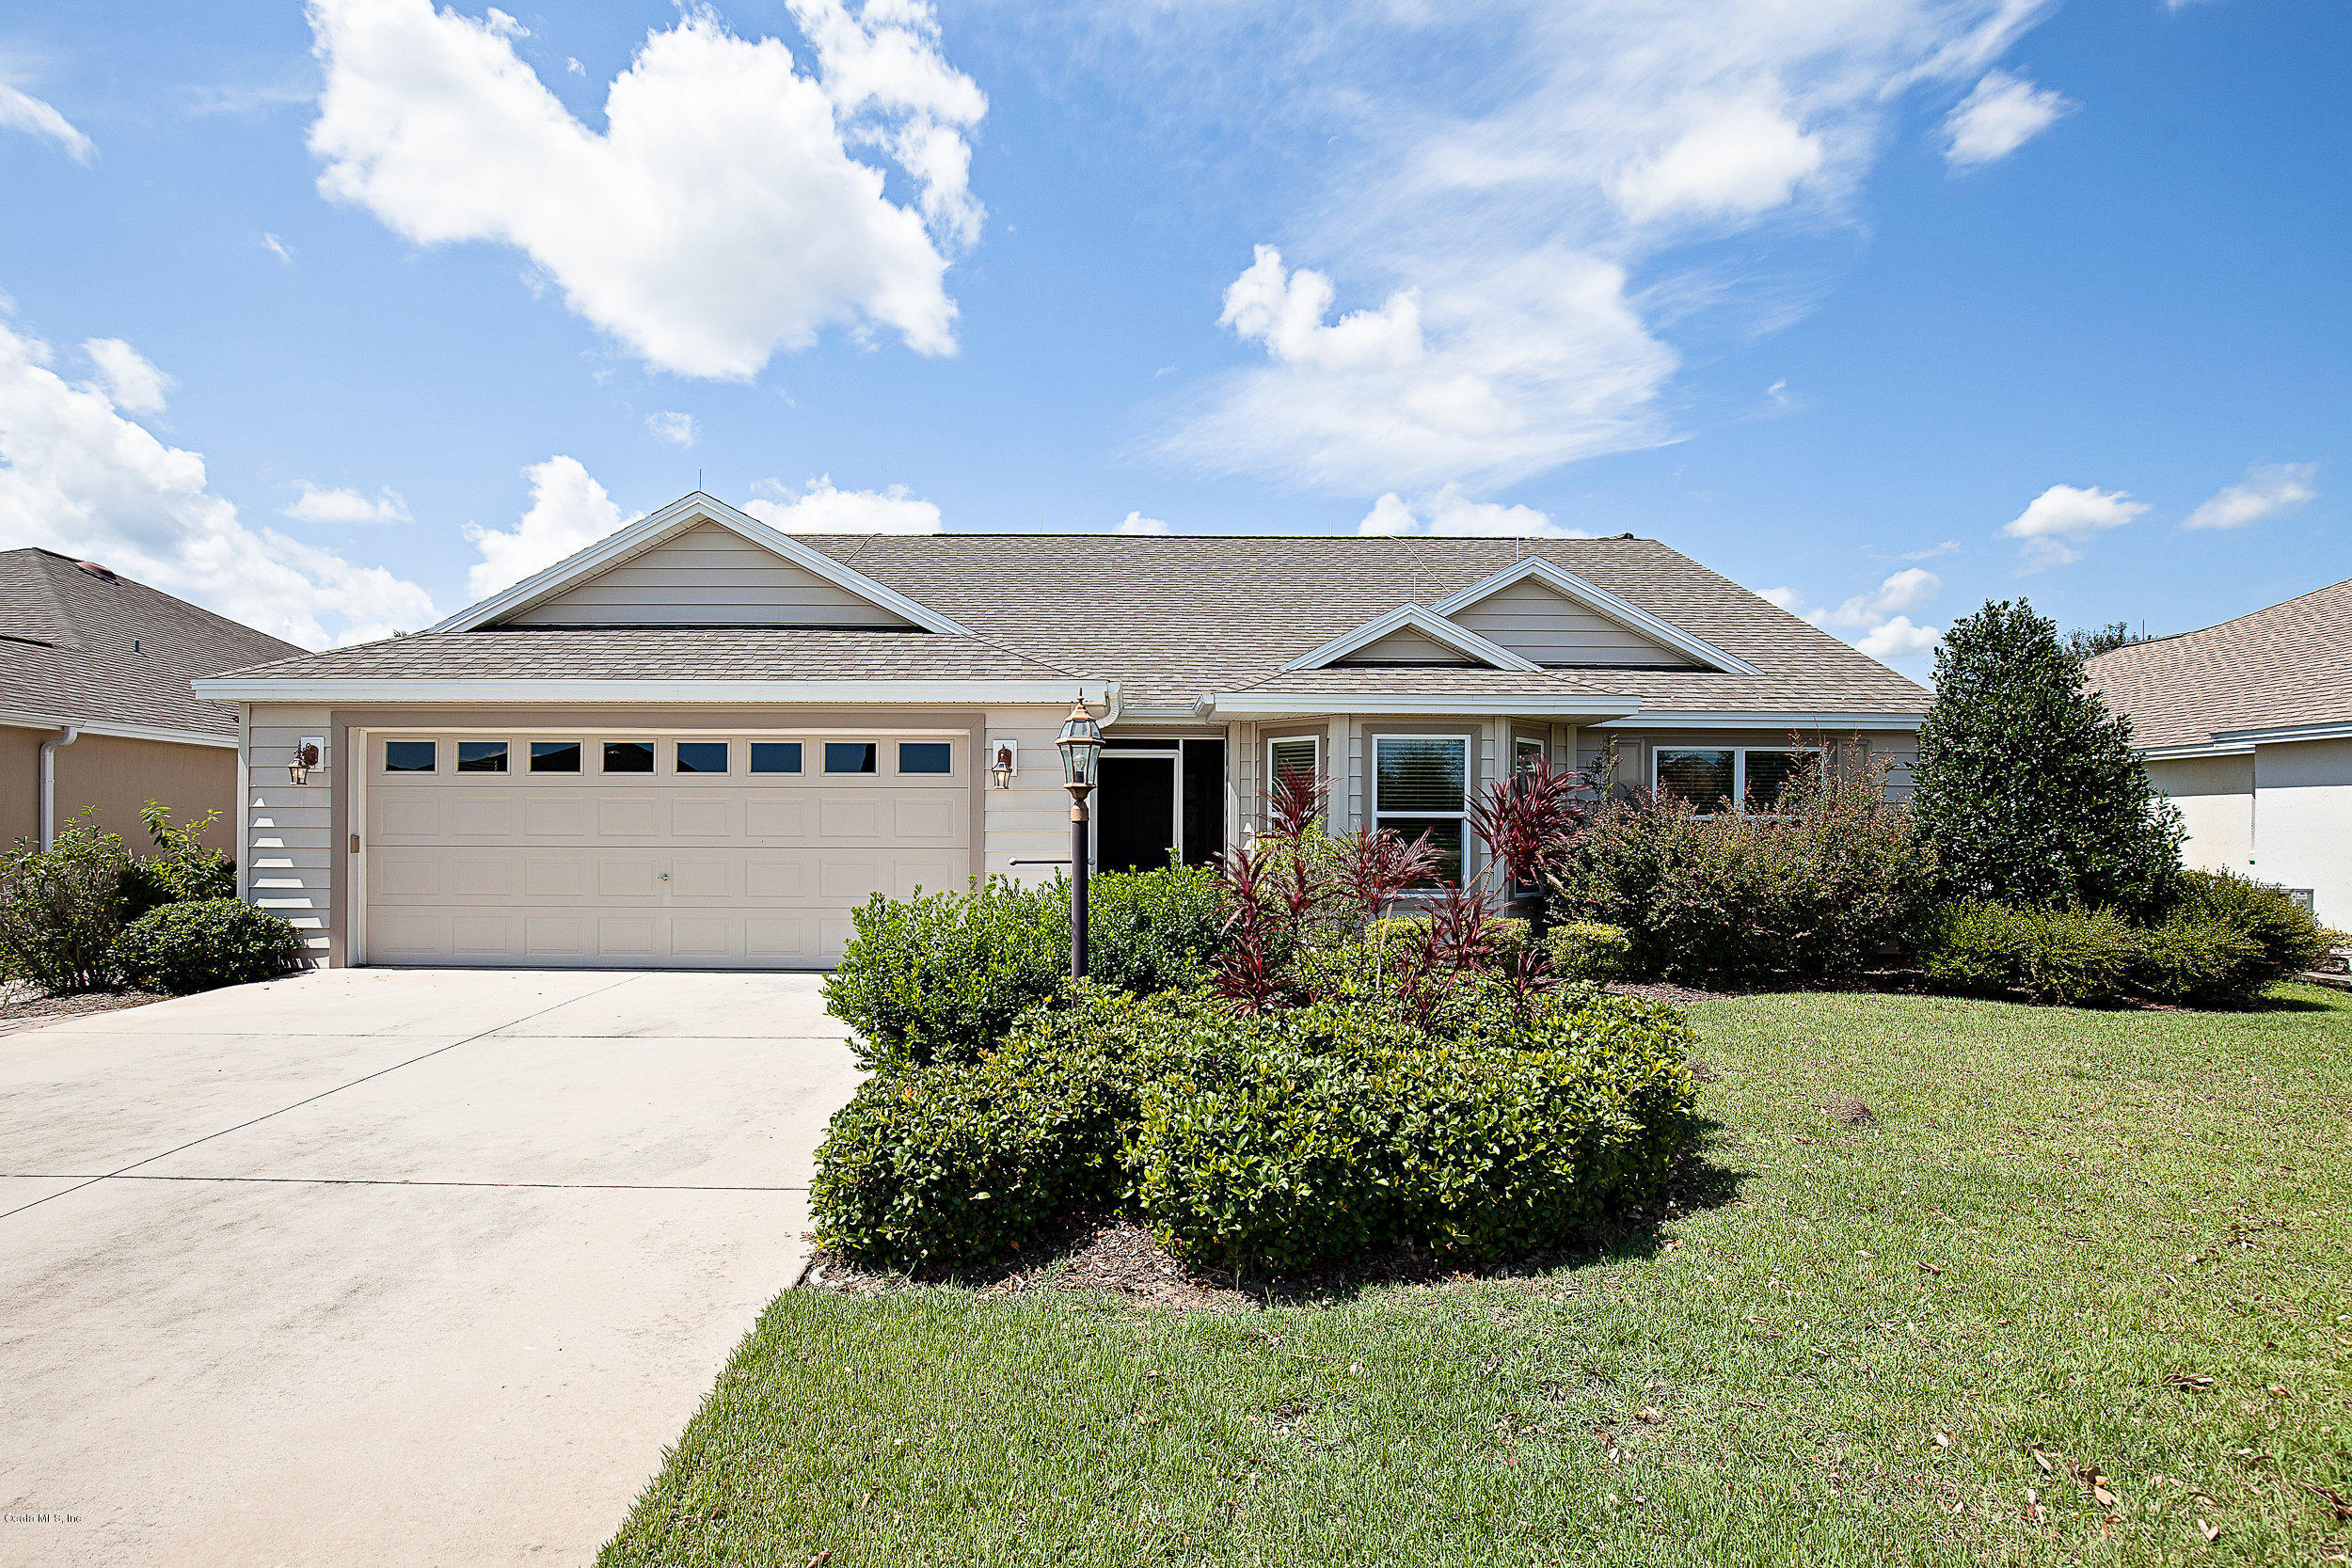 2596 MONTCLAIR LANE, THE VILLAGES, FL 32162